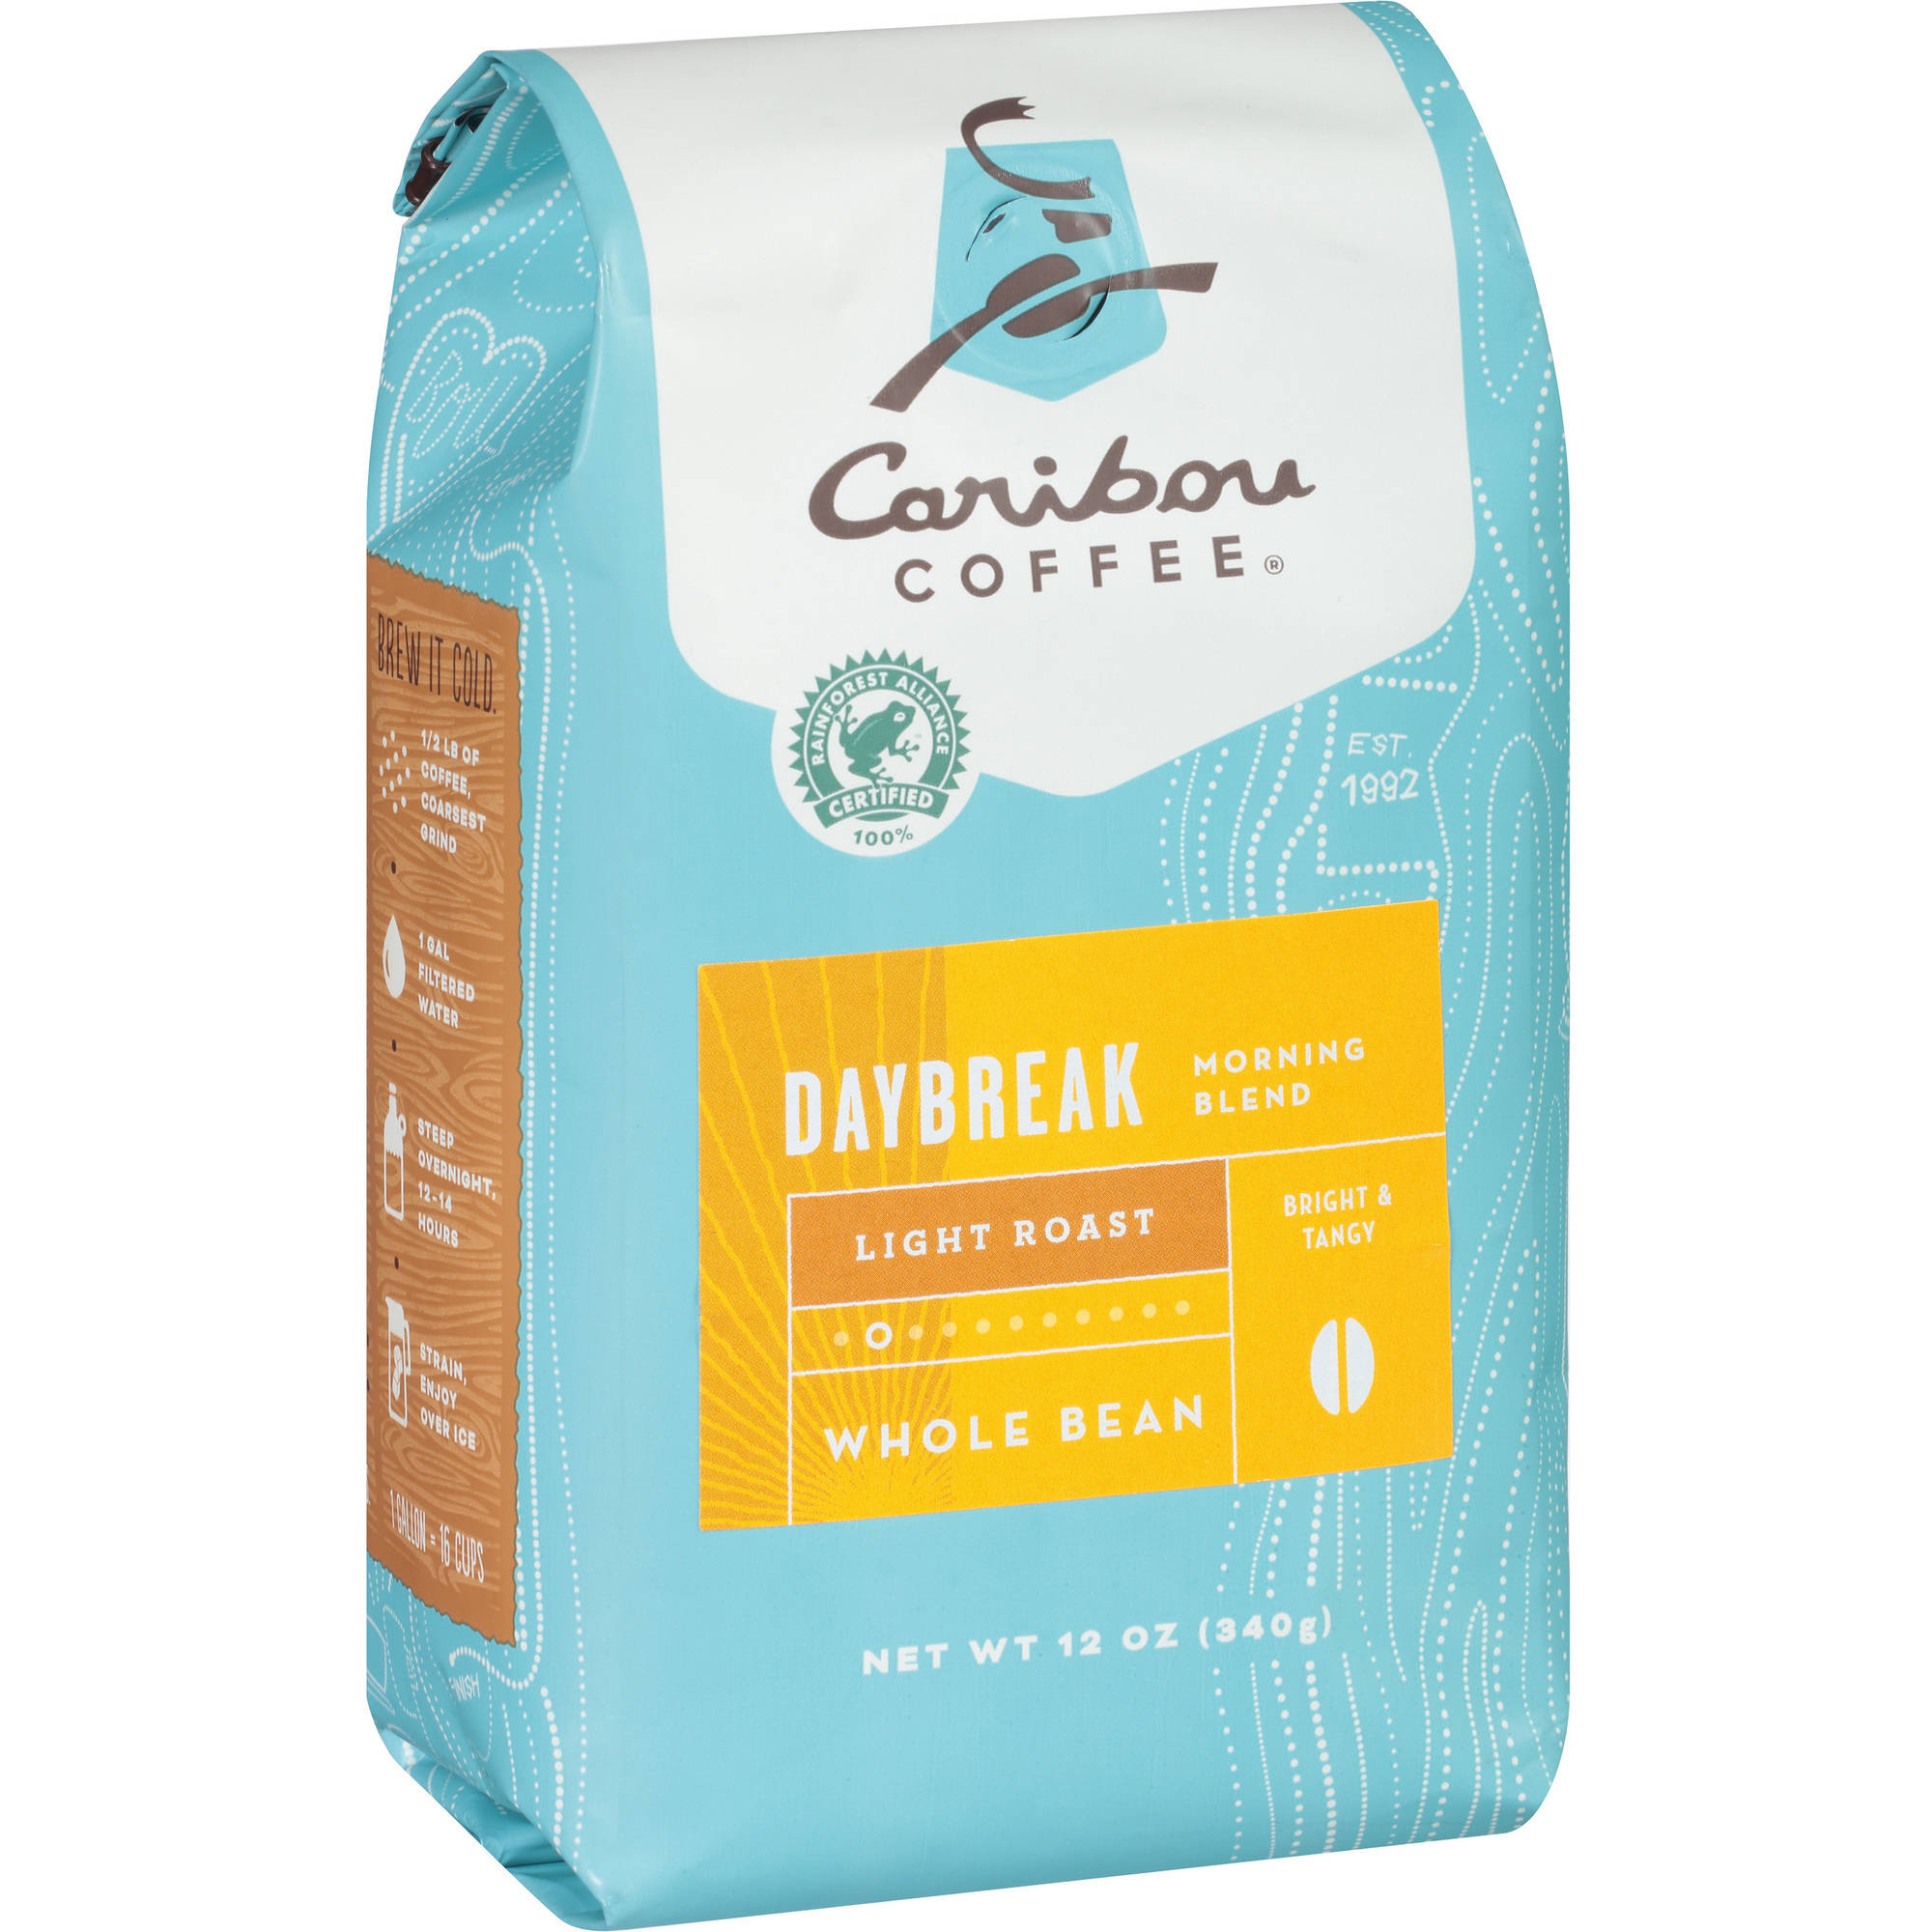 Caribou Coffee Morning Blend Daybreak Light Roast Whole Bean Coffee, 12 oz